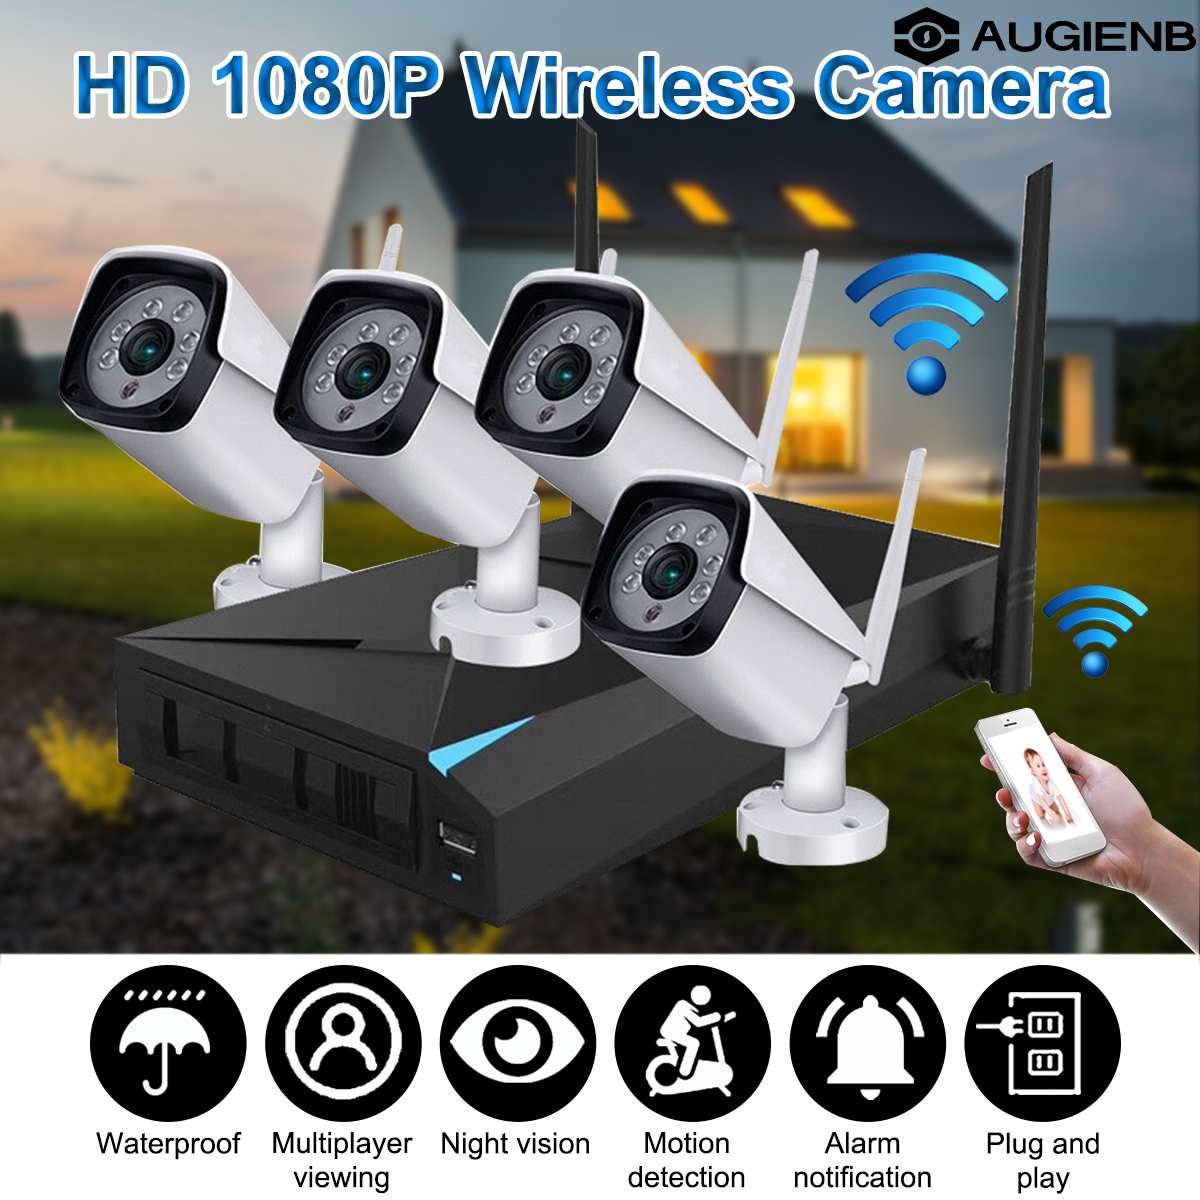 1080P Wireless Security Camera System, 4CH NVR WiFi IP Cameras, CCTV Video Surveillance System Kit Plug & Play, Motion Detection